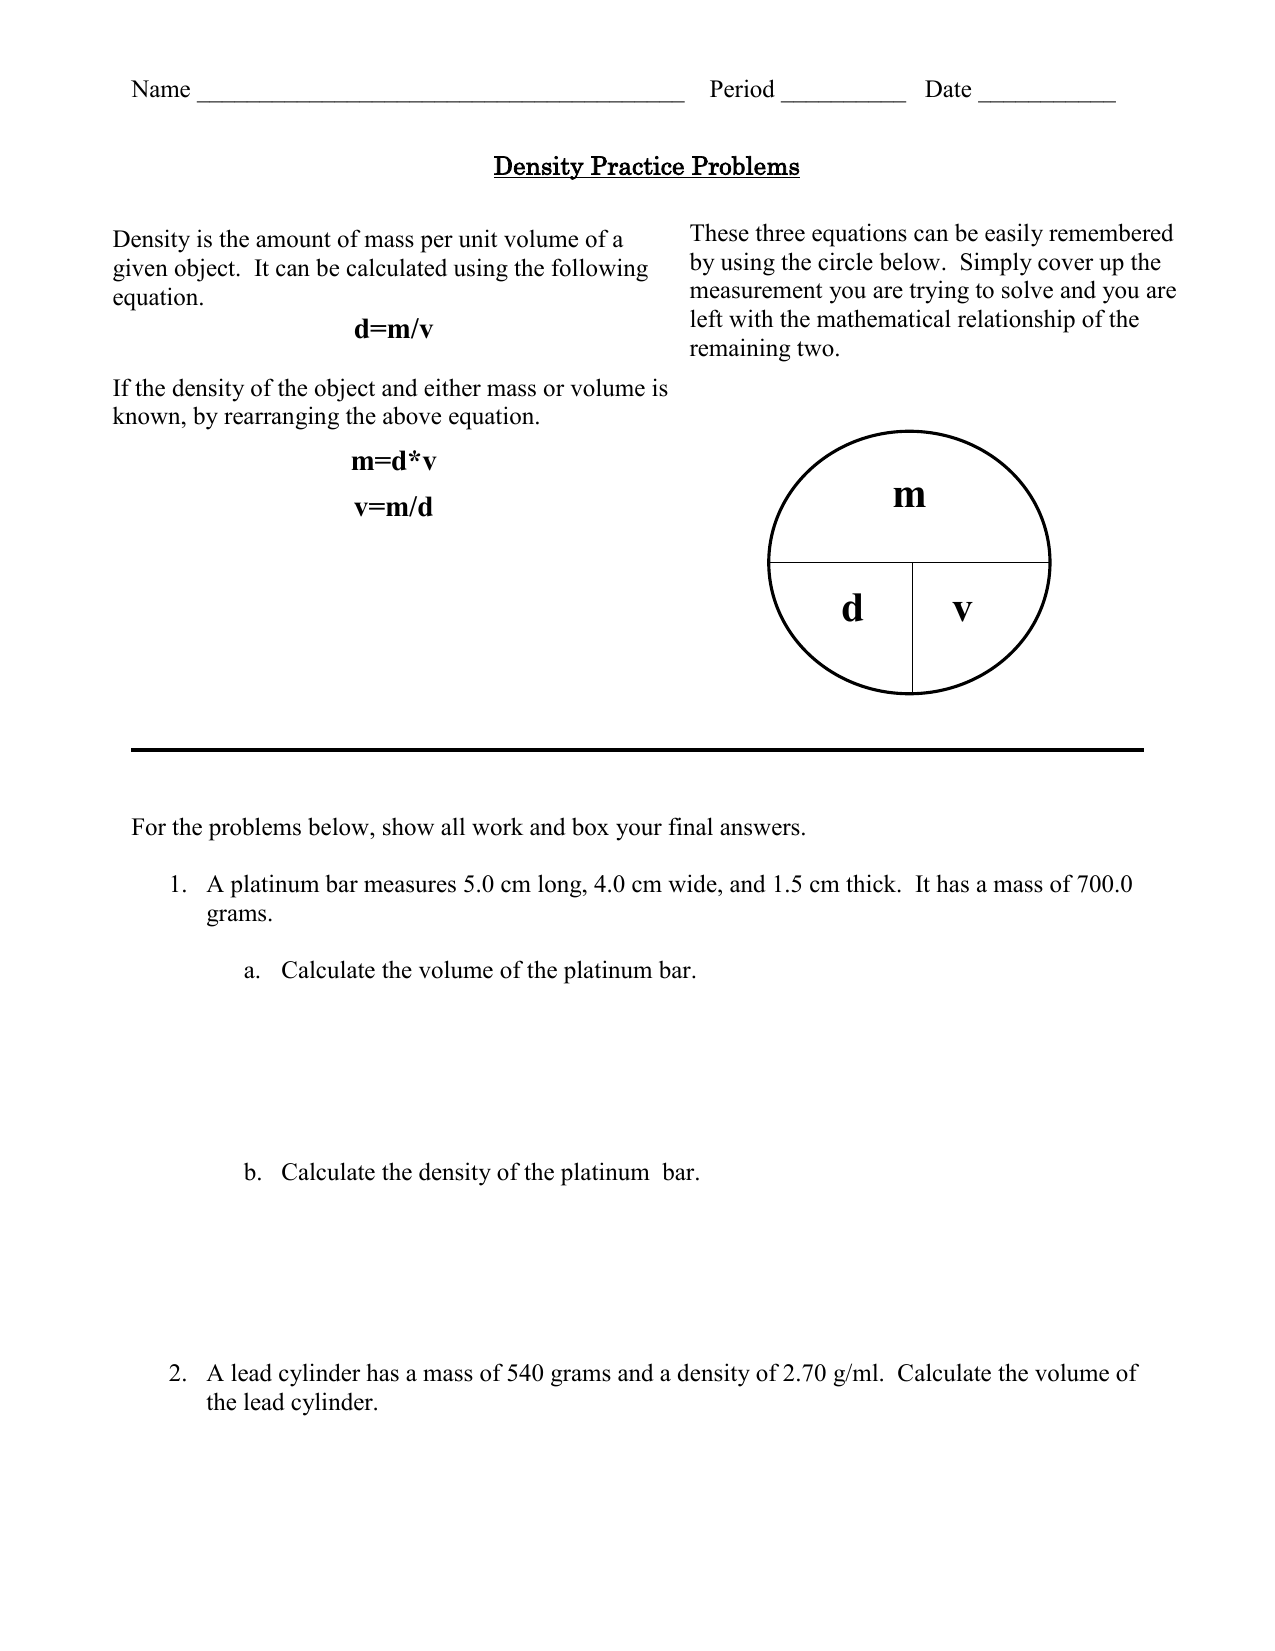 Density practice problems 0068068181 5957f50d45f79e3357399d53850dd823g ibookread